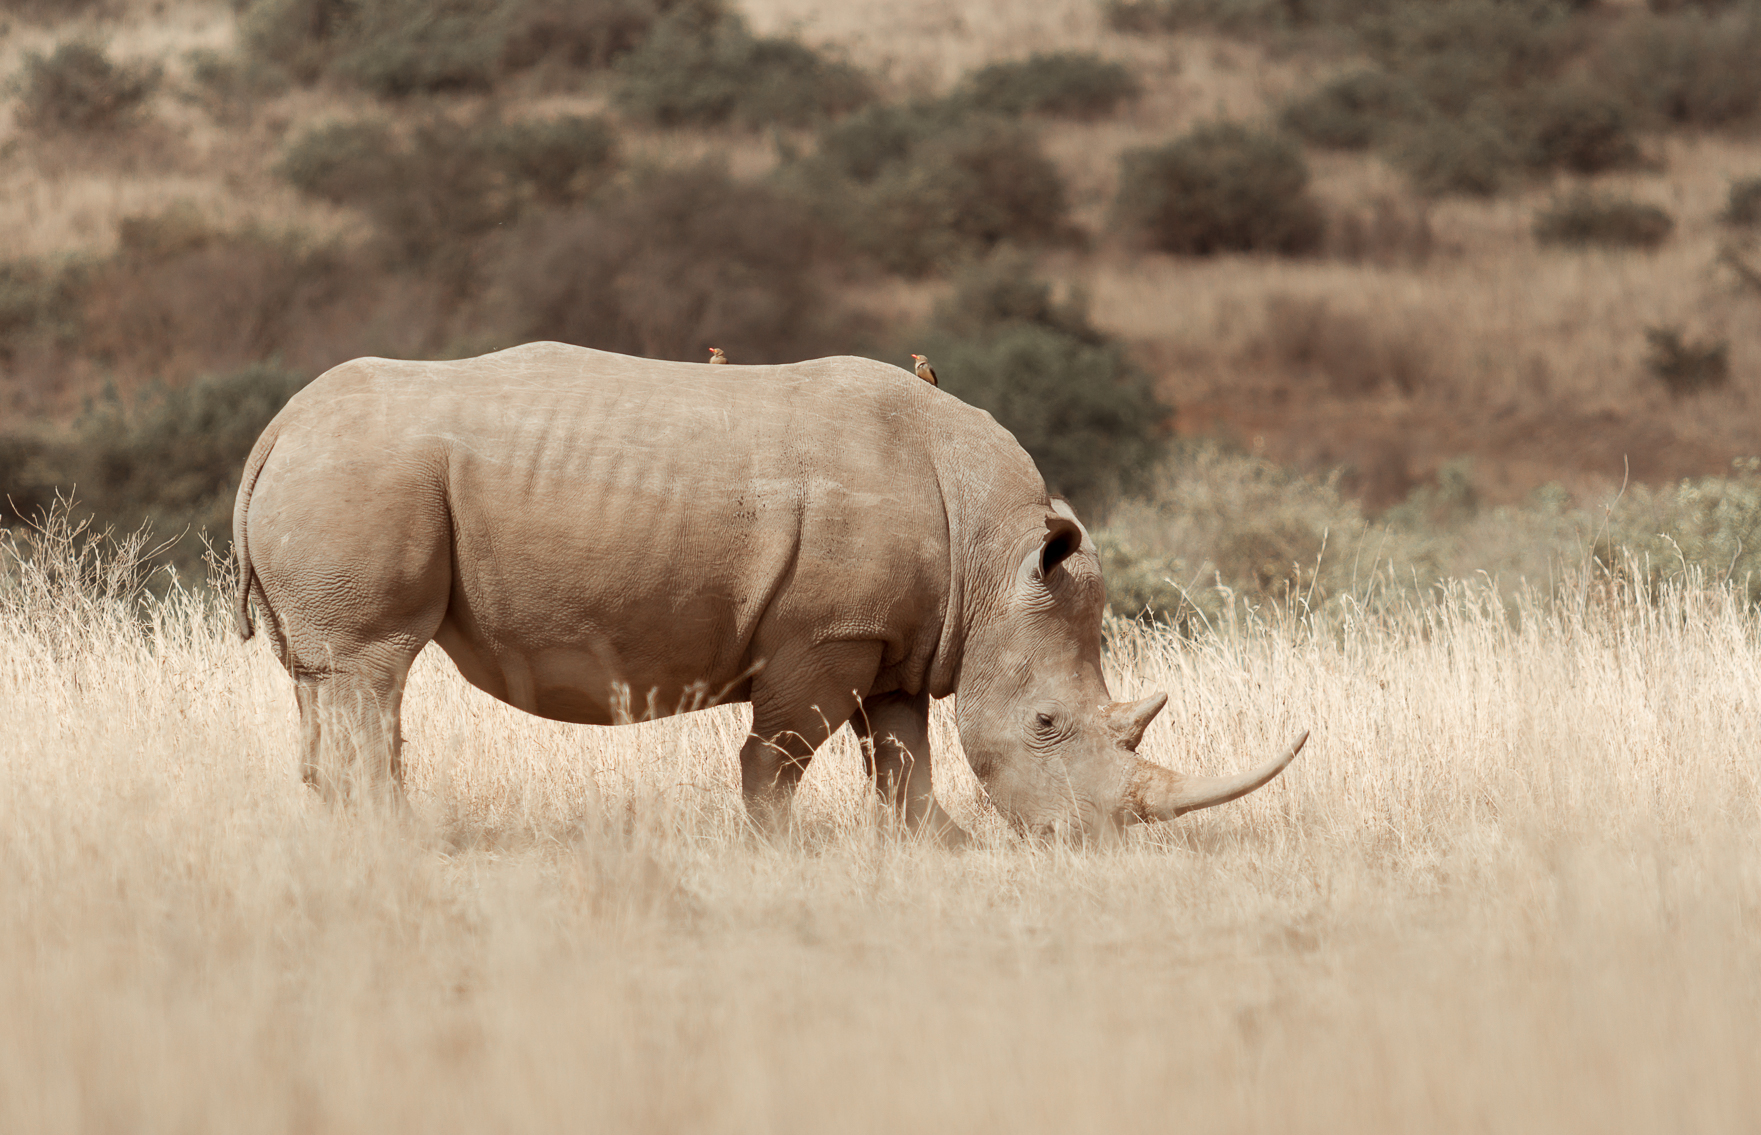 A rhino grazing in the Nairobi National Park